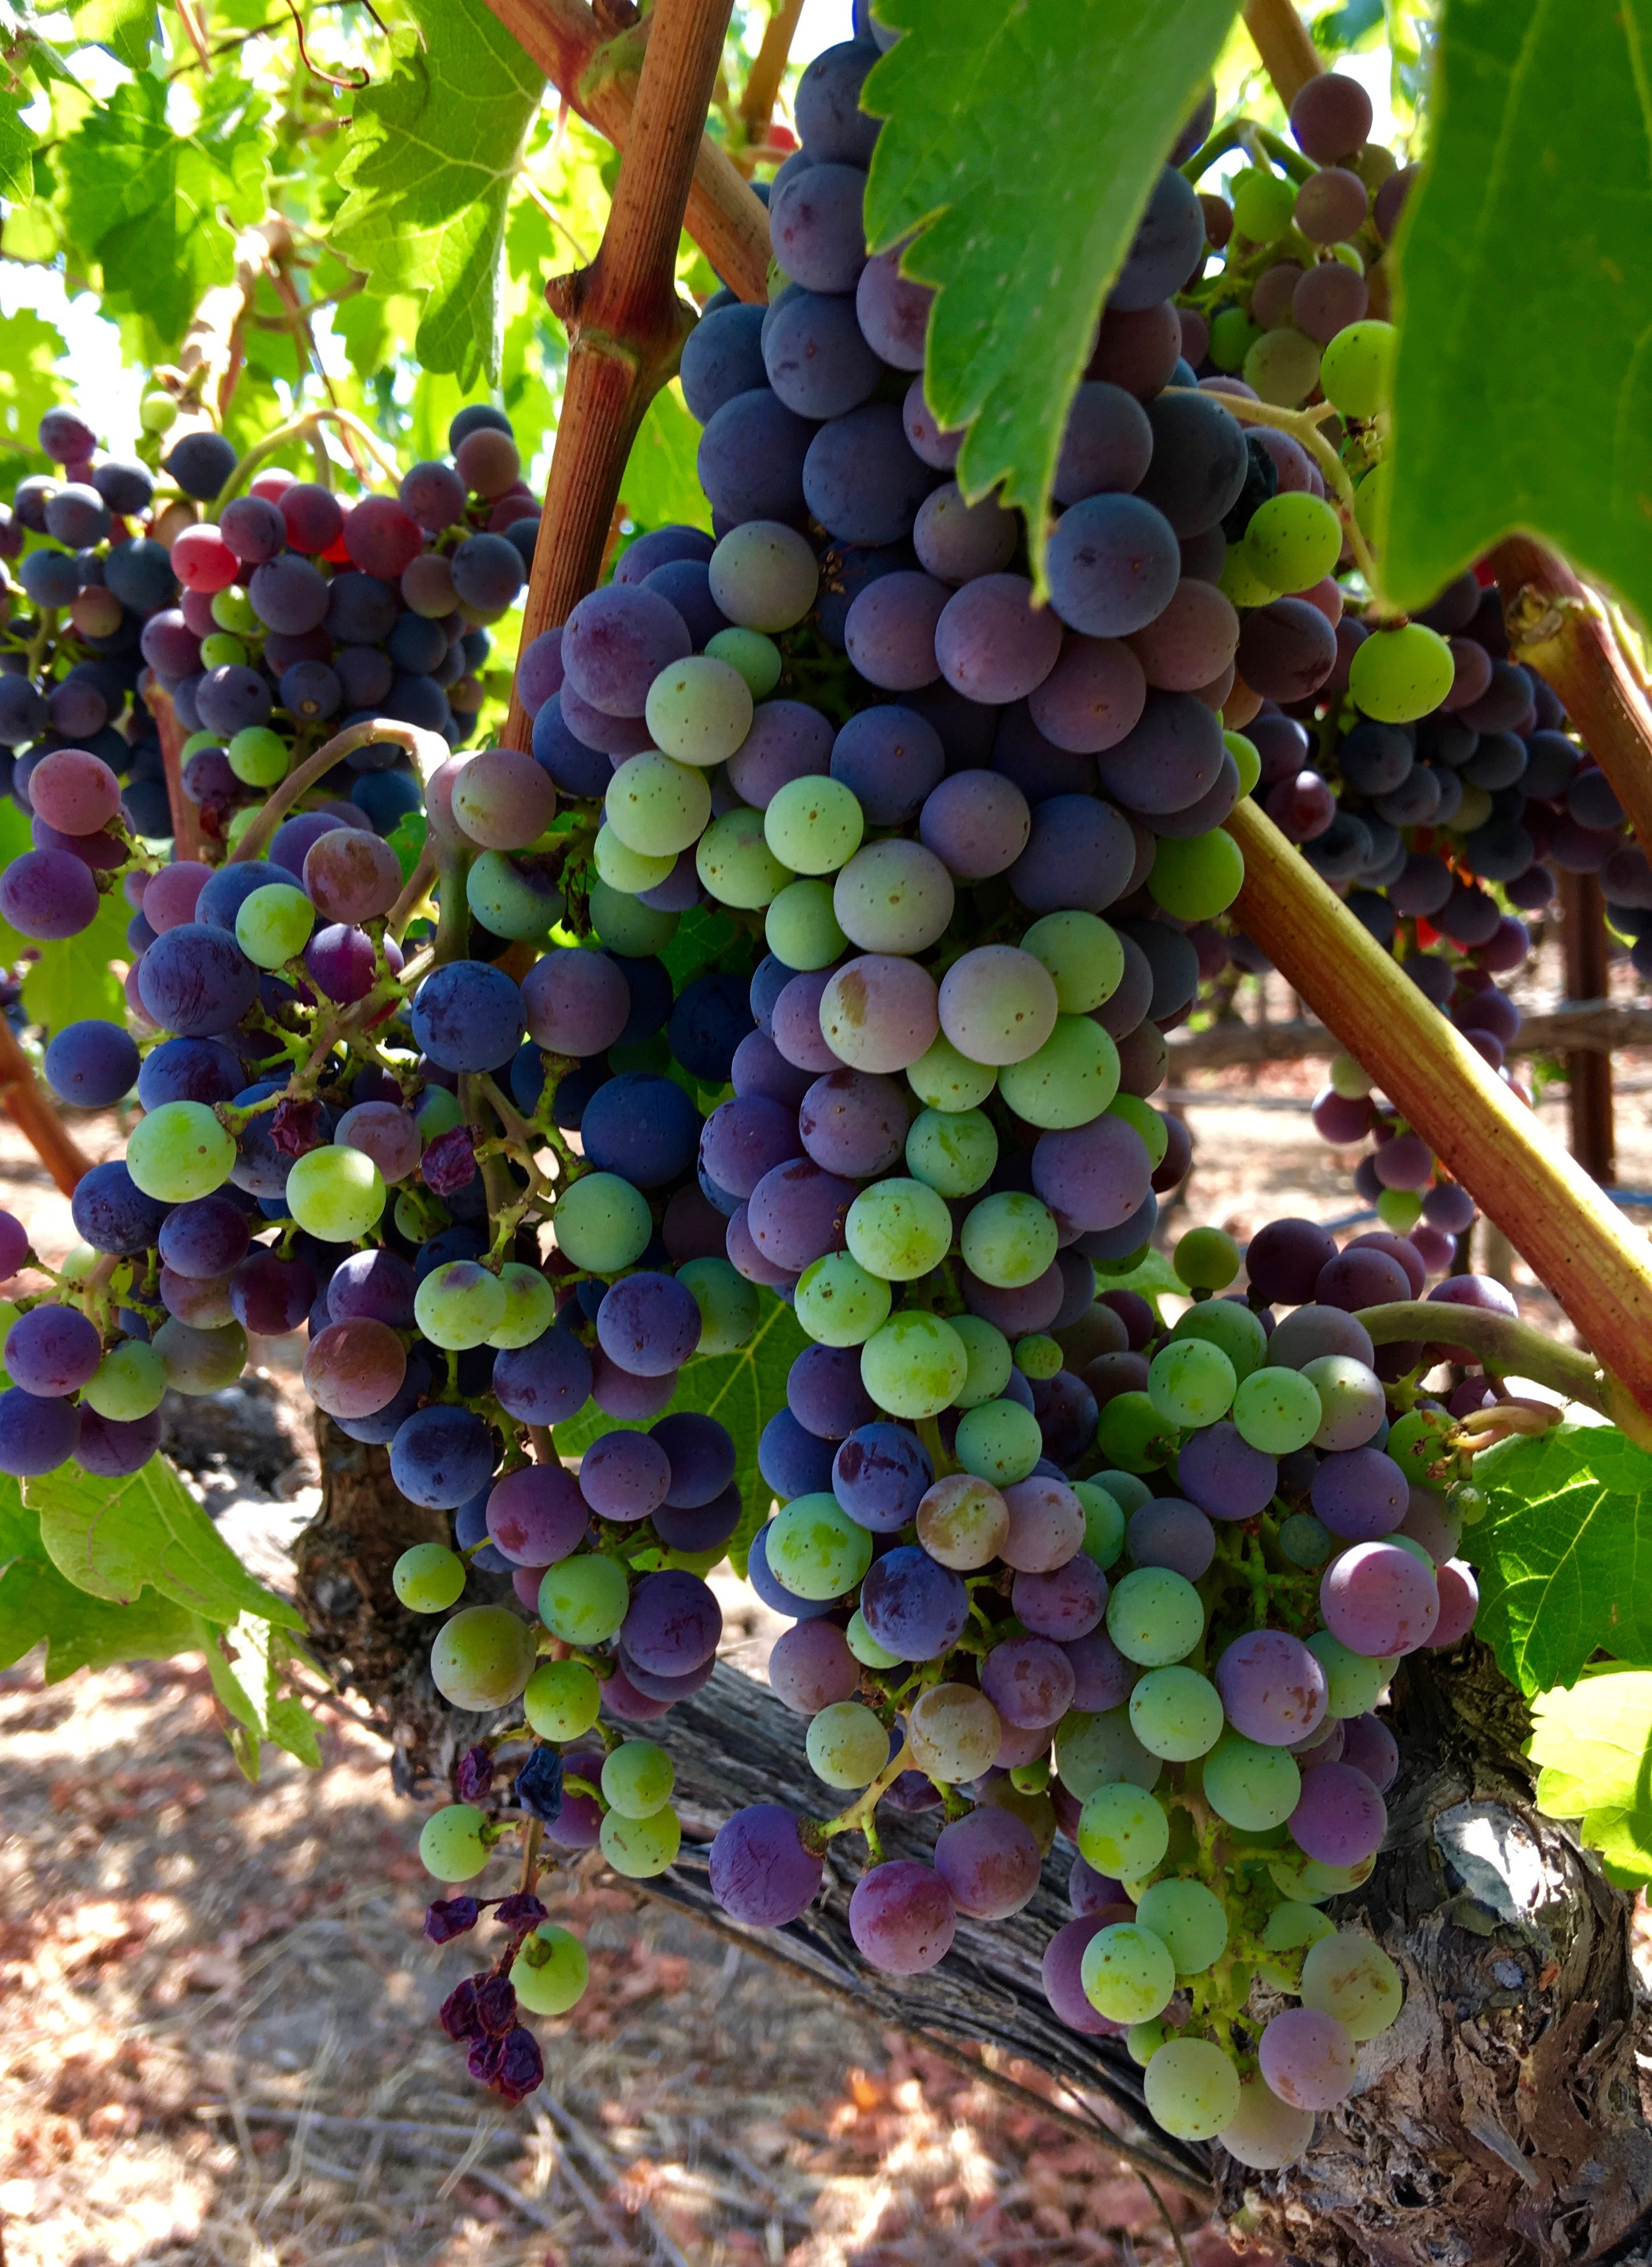 Veraison in action    Again, MAX is a Cabernet vine, so we're looking at a dramatic change in color versus what one would see with white varietals. This cluster is roughly mid-veraison with half the fruit still green. The cluster will fully turn in color signaling the end of this phase. Next, Blair will be managing the ripening process further by deciding on whether to trim the canopy to allow more sun on the fruit (speed ripening) and how many clusters to drop (concentrate the vine's energy to fewer clusters for more intense fruit)as we start to approach harvest time, likely next month. Stay tuned for it all!